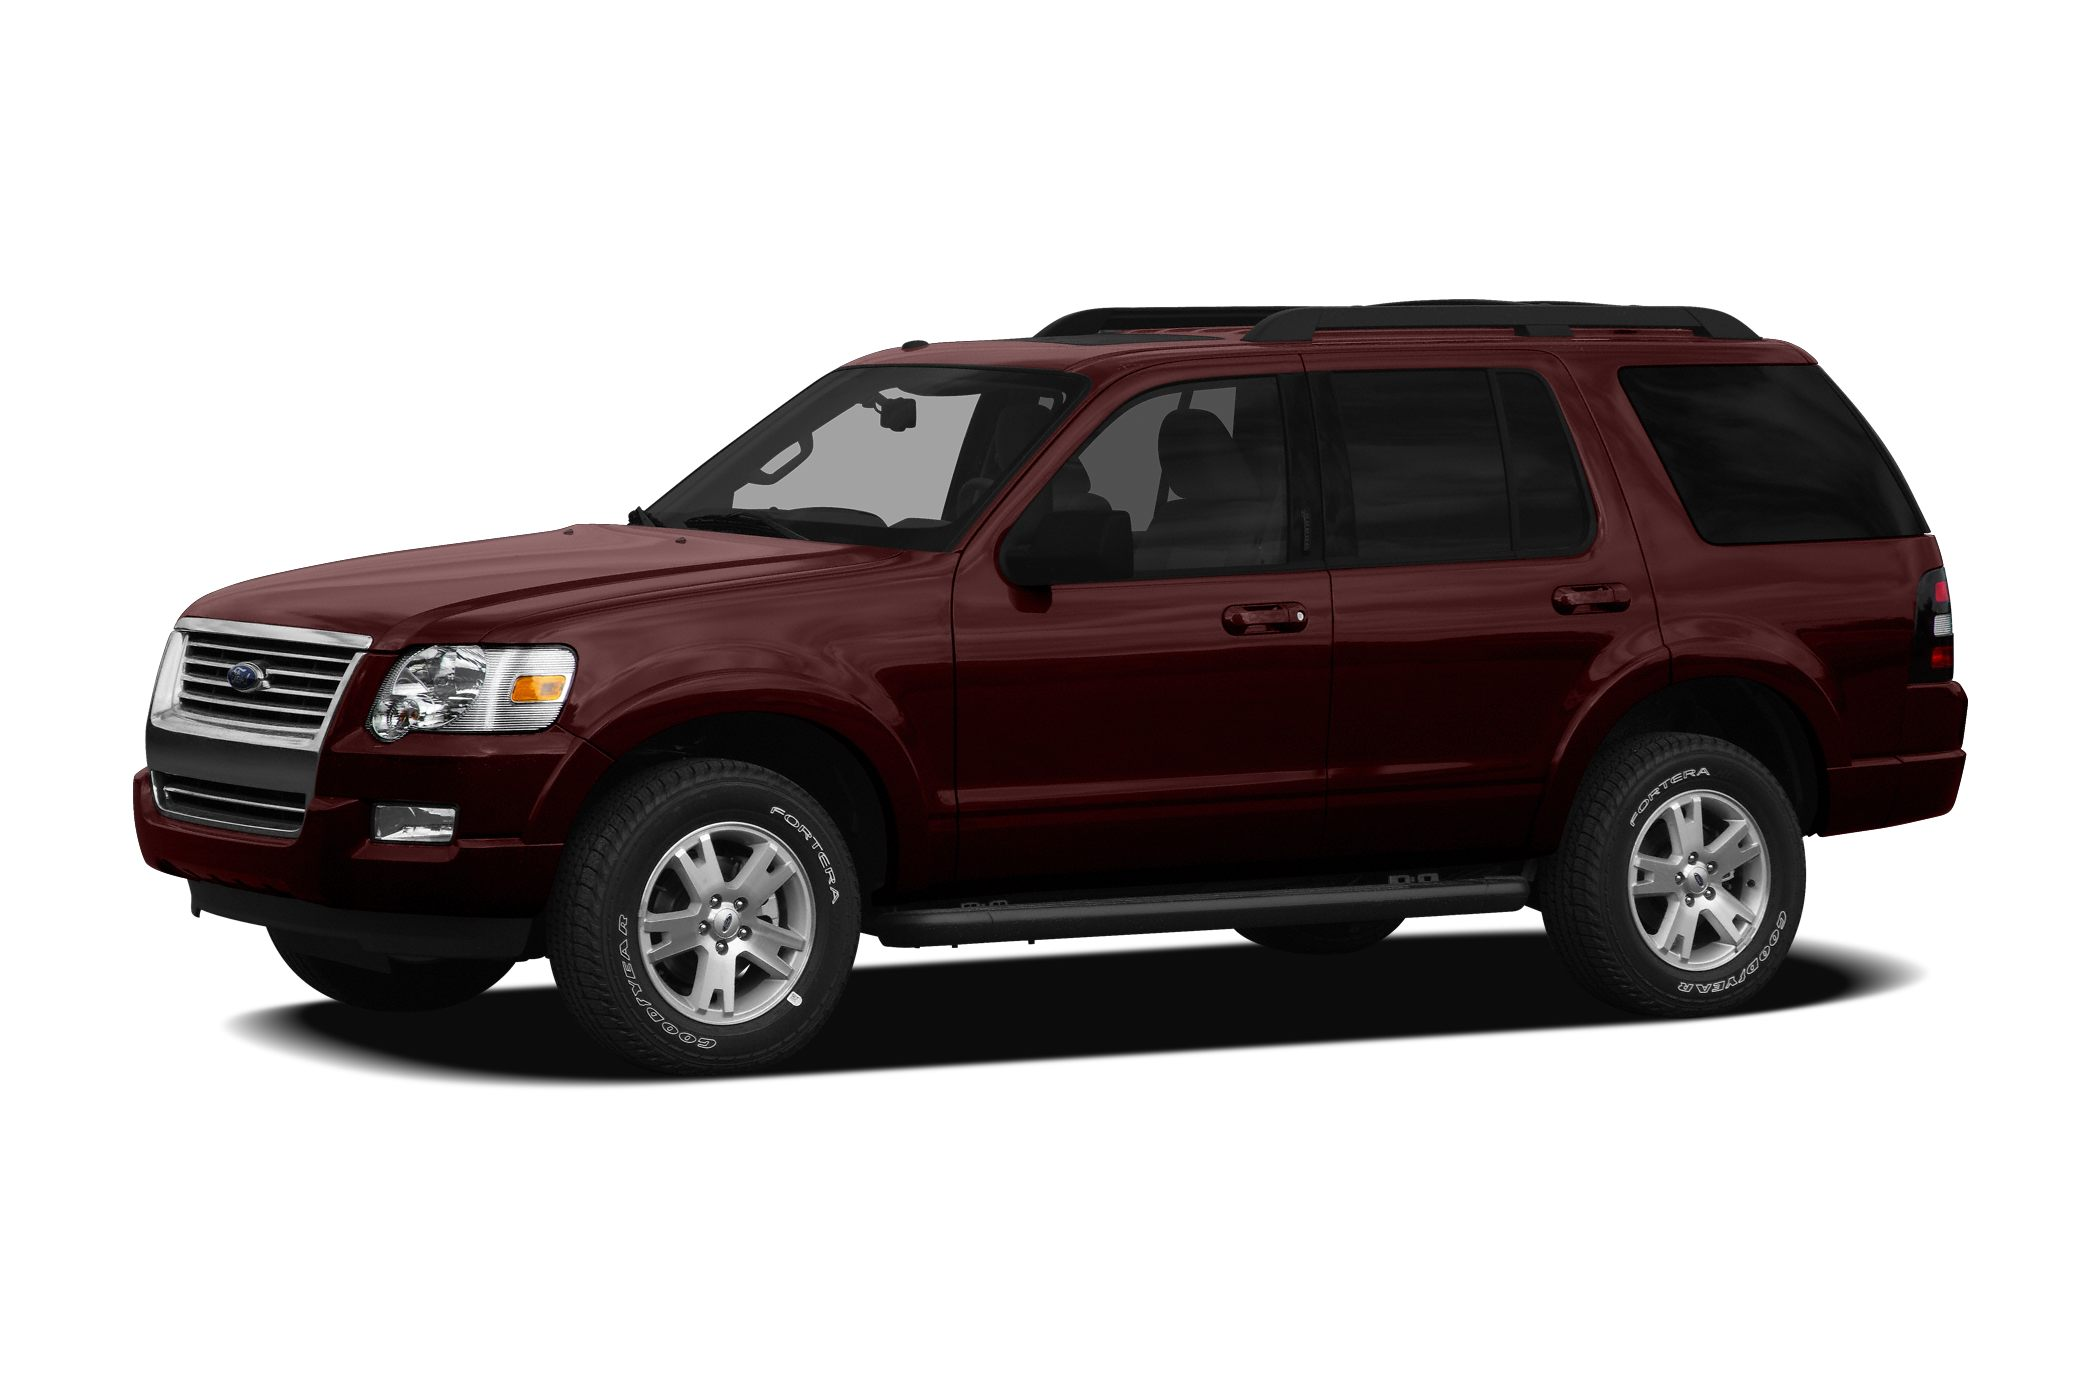 2009 Ford Explorer Specs and Prices